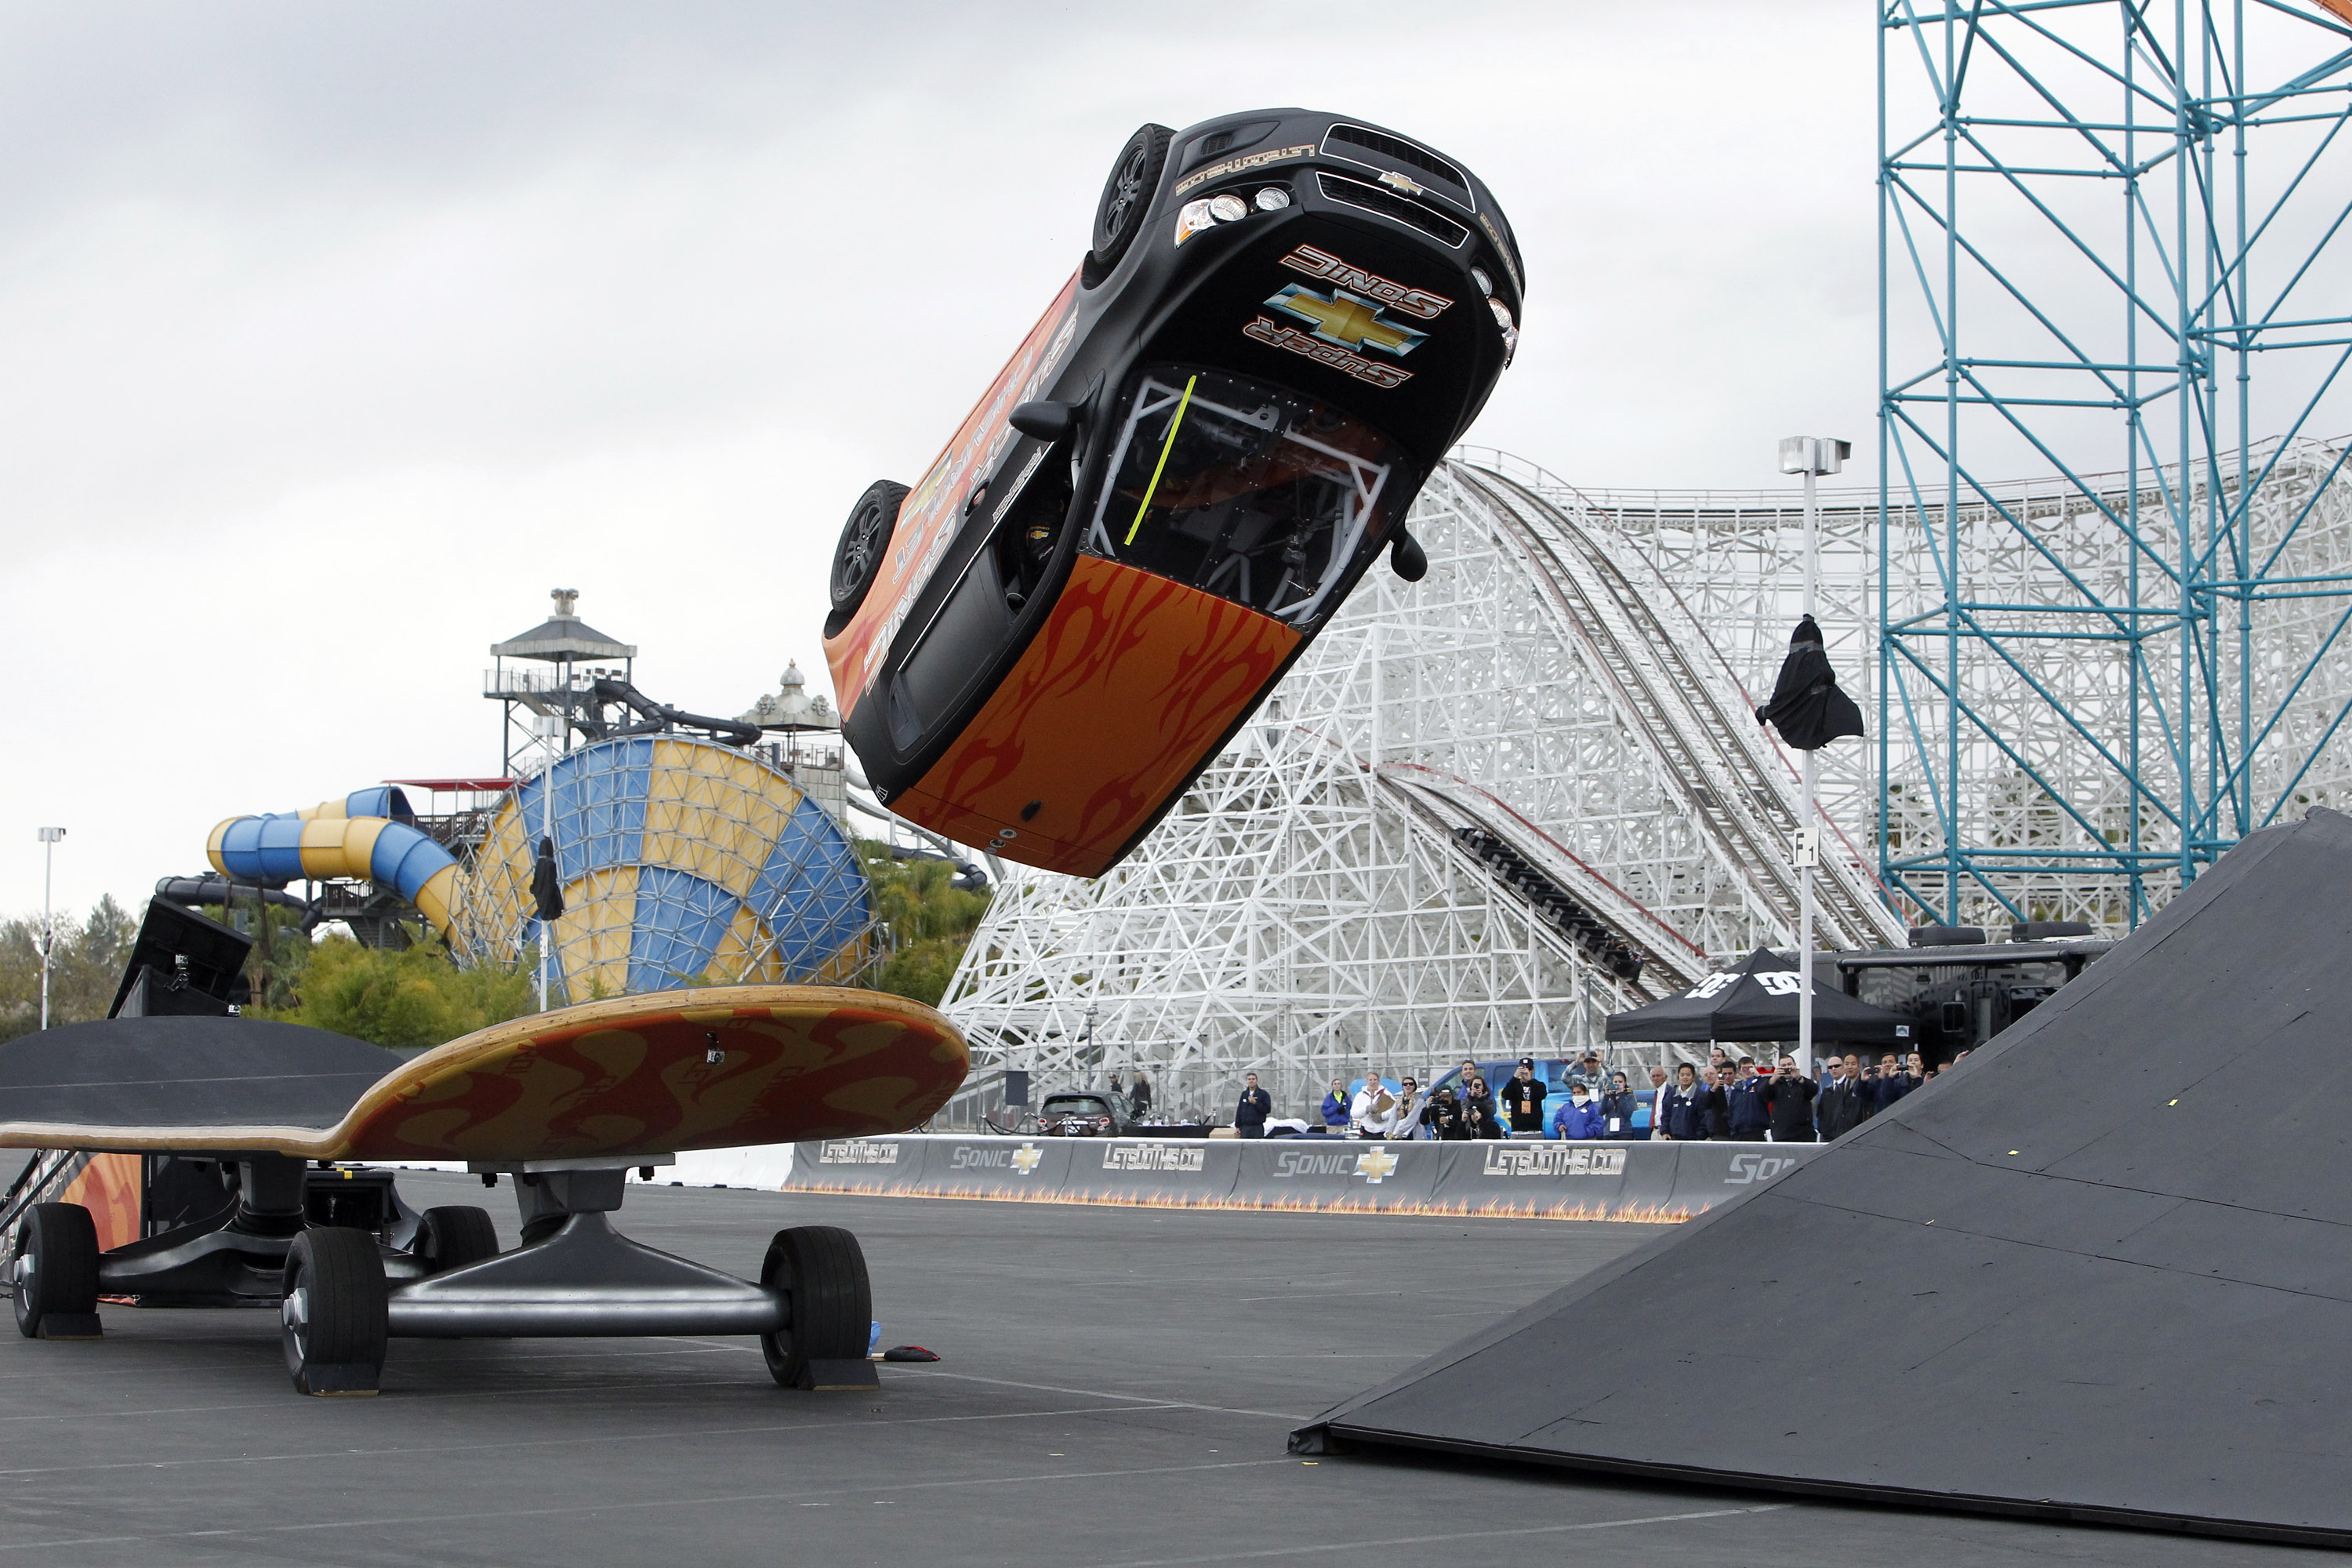 In 2011, former pro skateboarder Rob Dyrdek resurrected the stunt at Six Flags Magic Mountain to publicize the then-new Chevrolet Sonic. The resulting video was a YouTube hit.